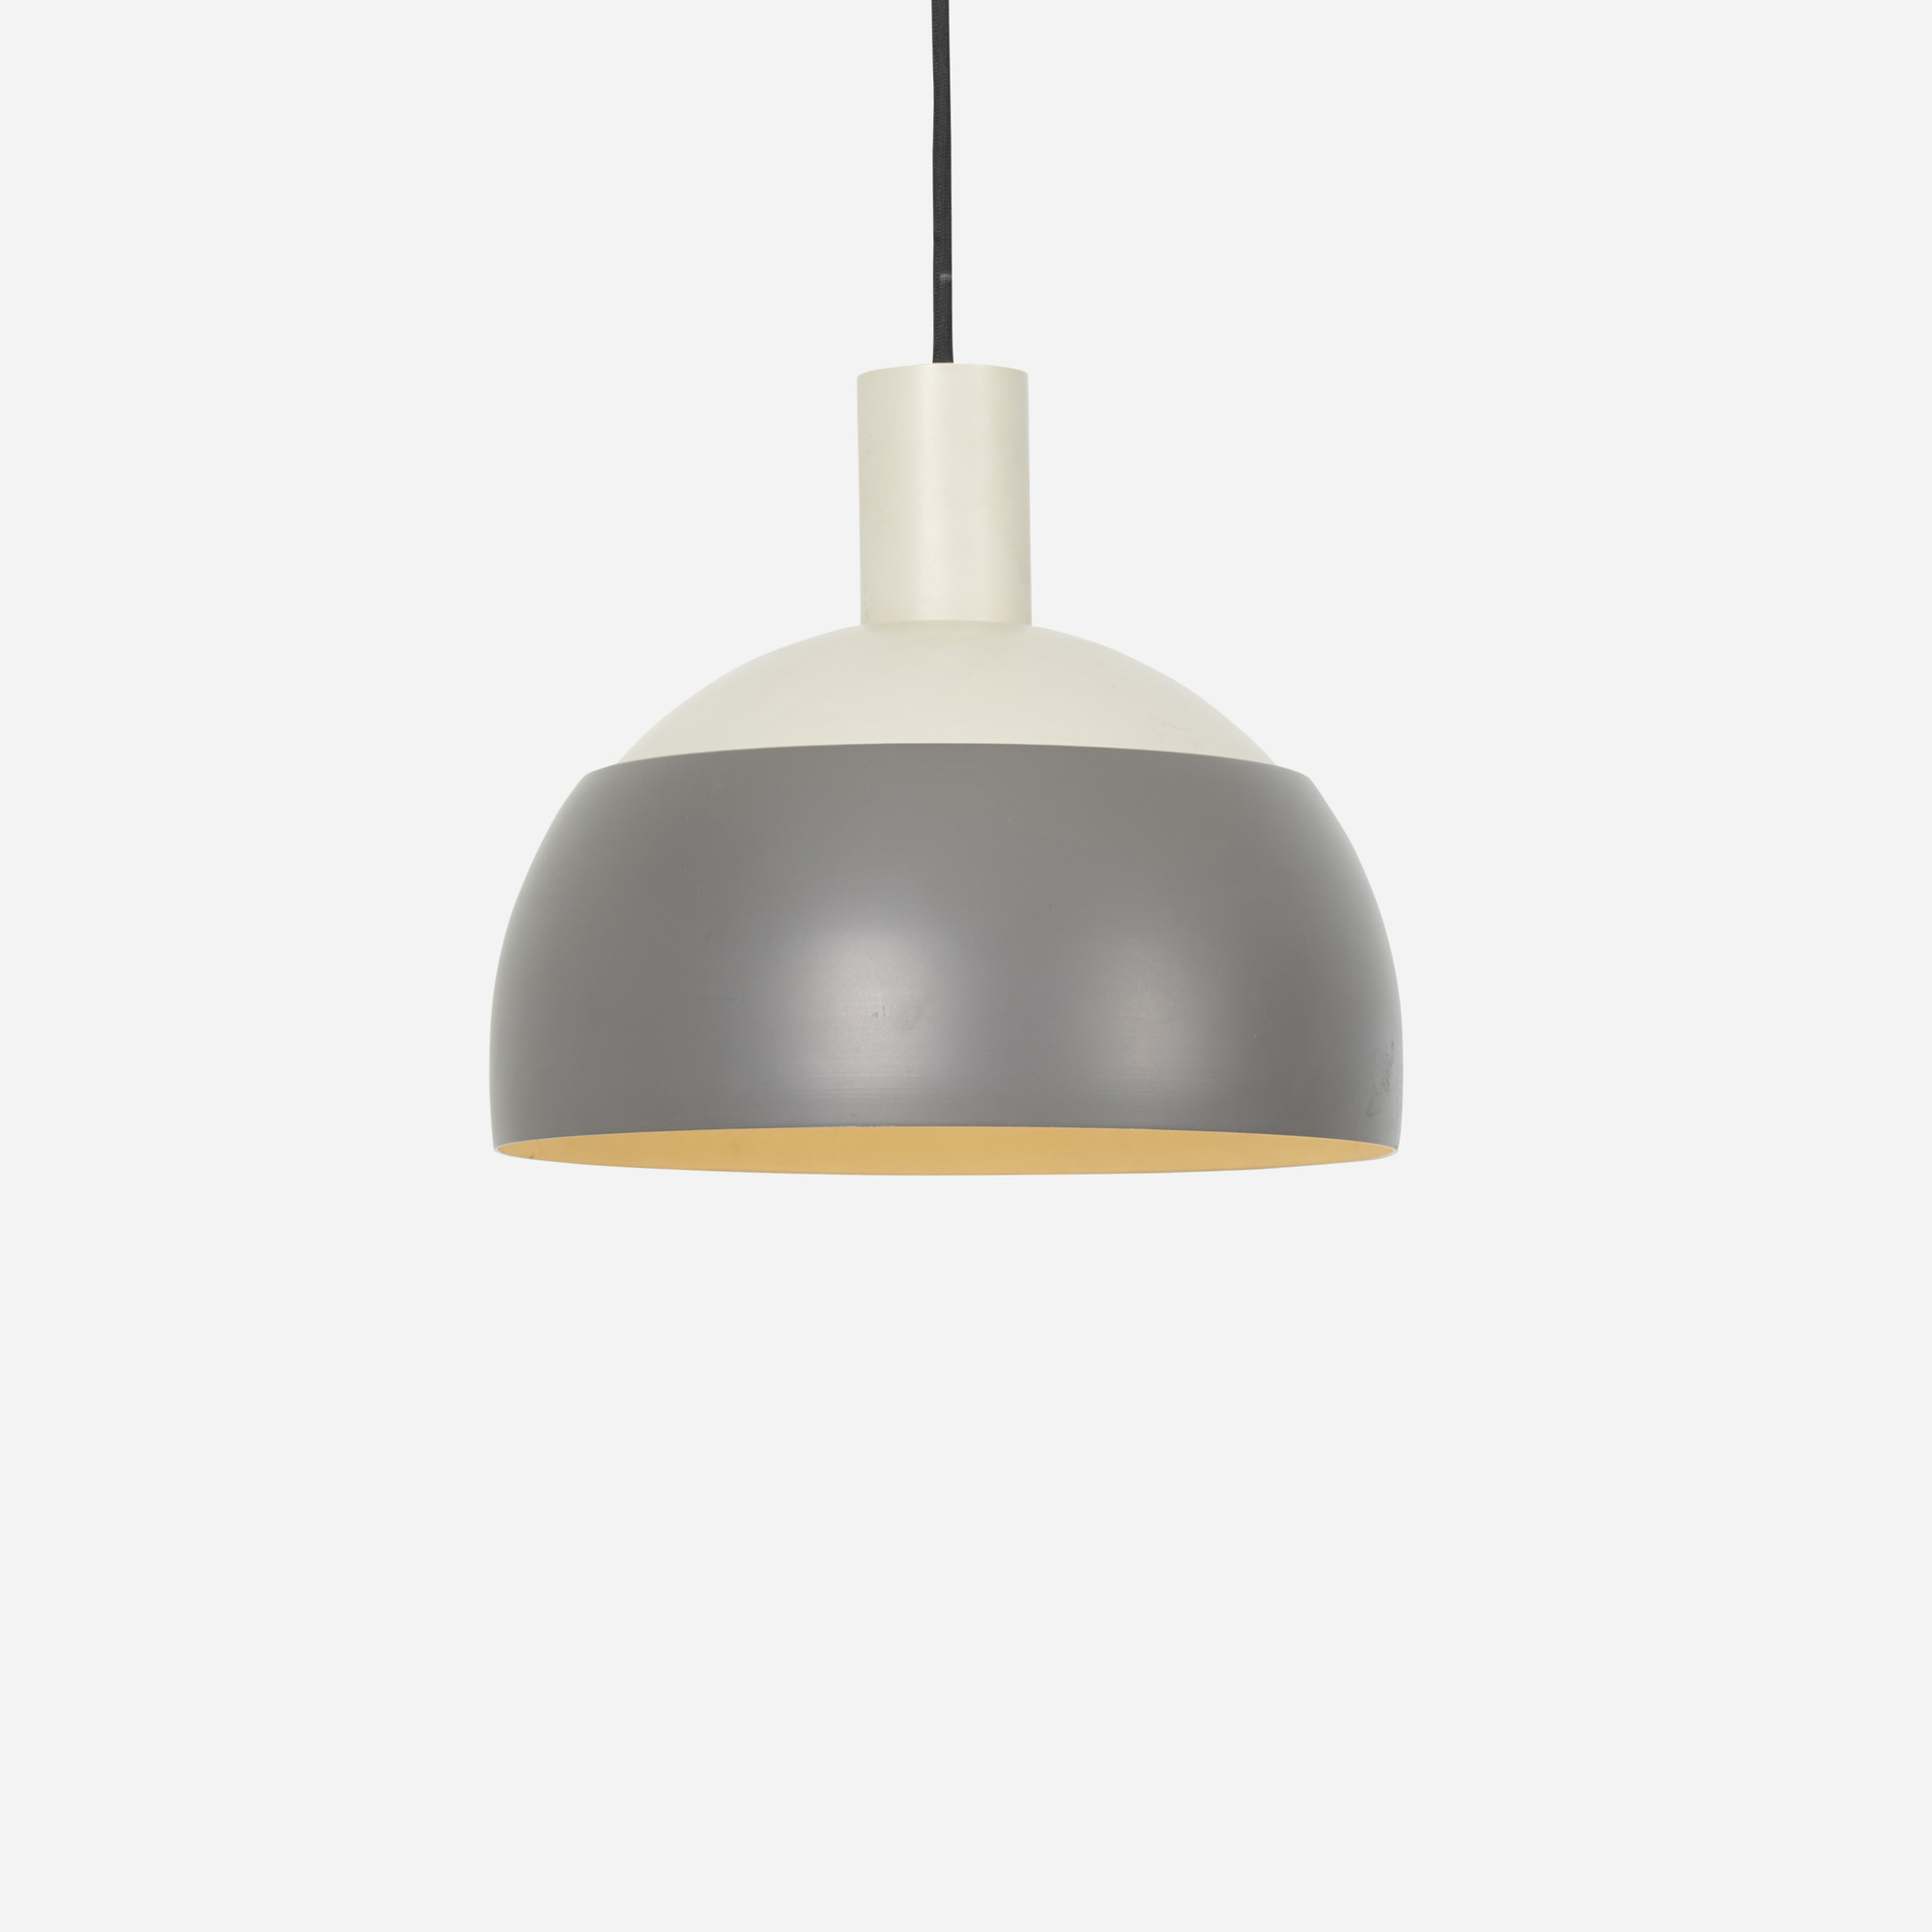 220: Finn Juhl / hanging lamp (1 of 1)